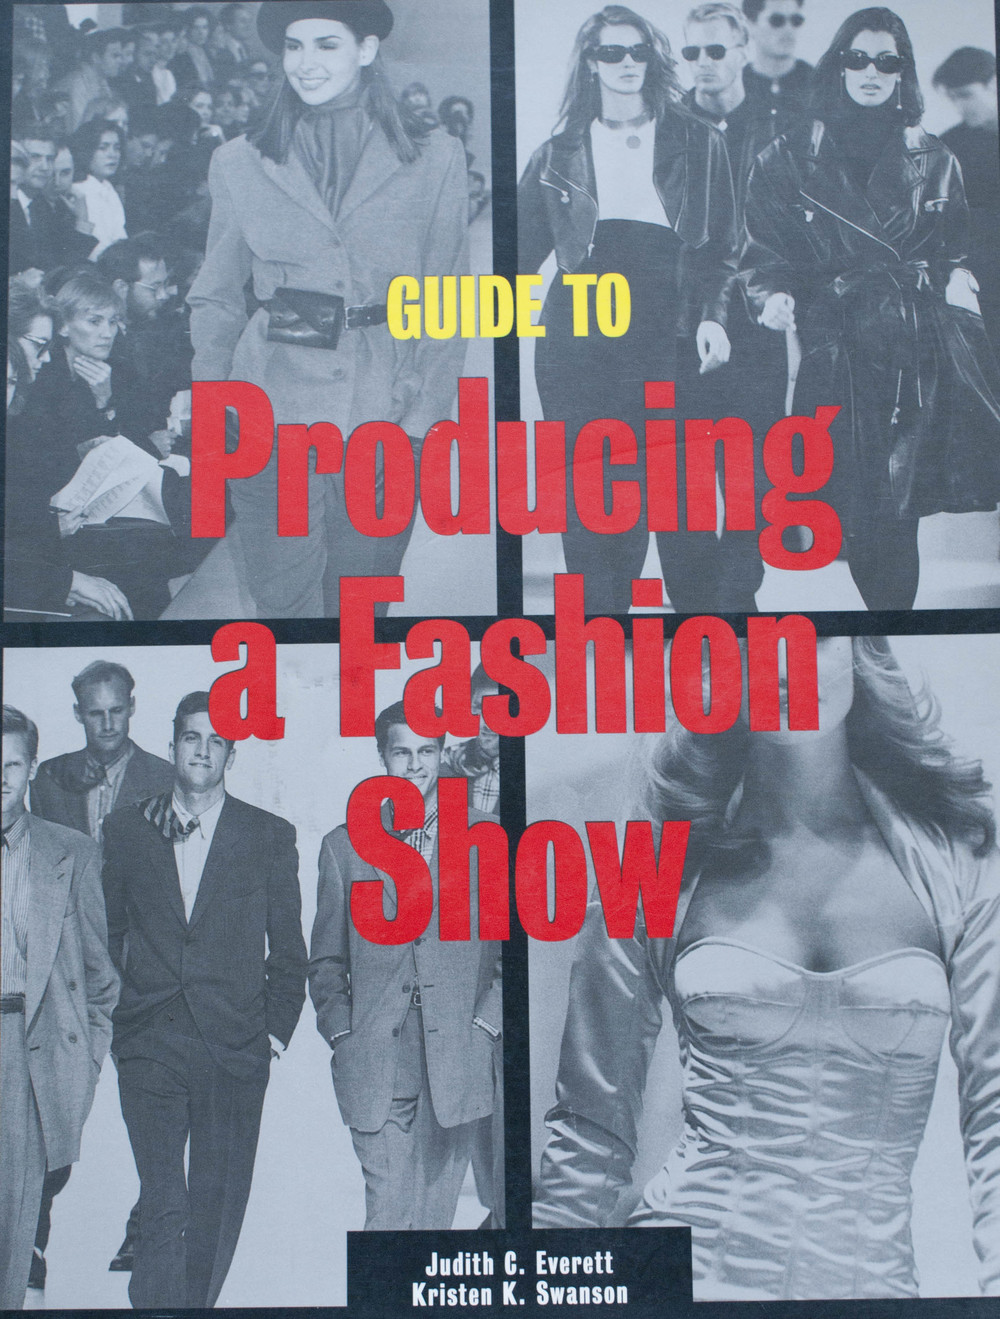 Guide to producing a fashion show.jpg